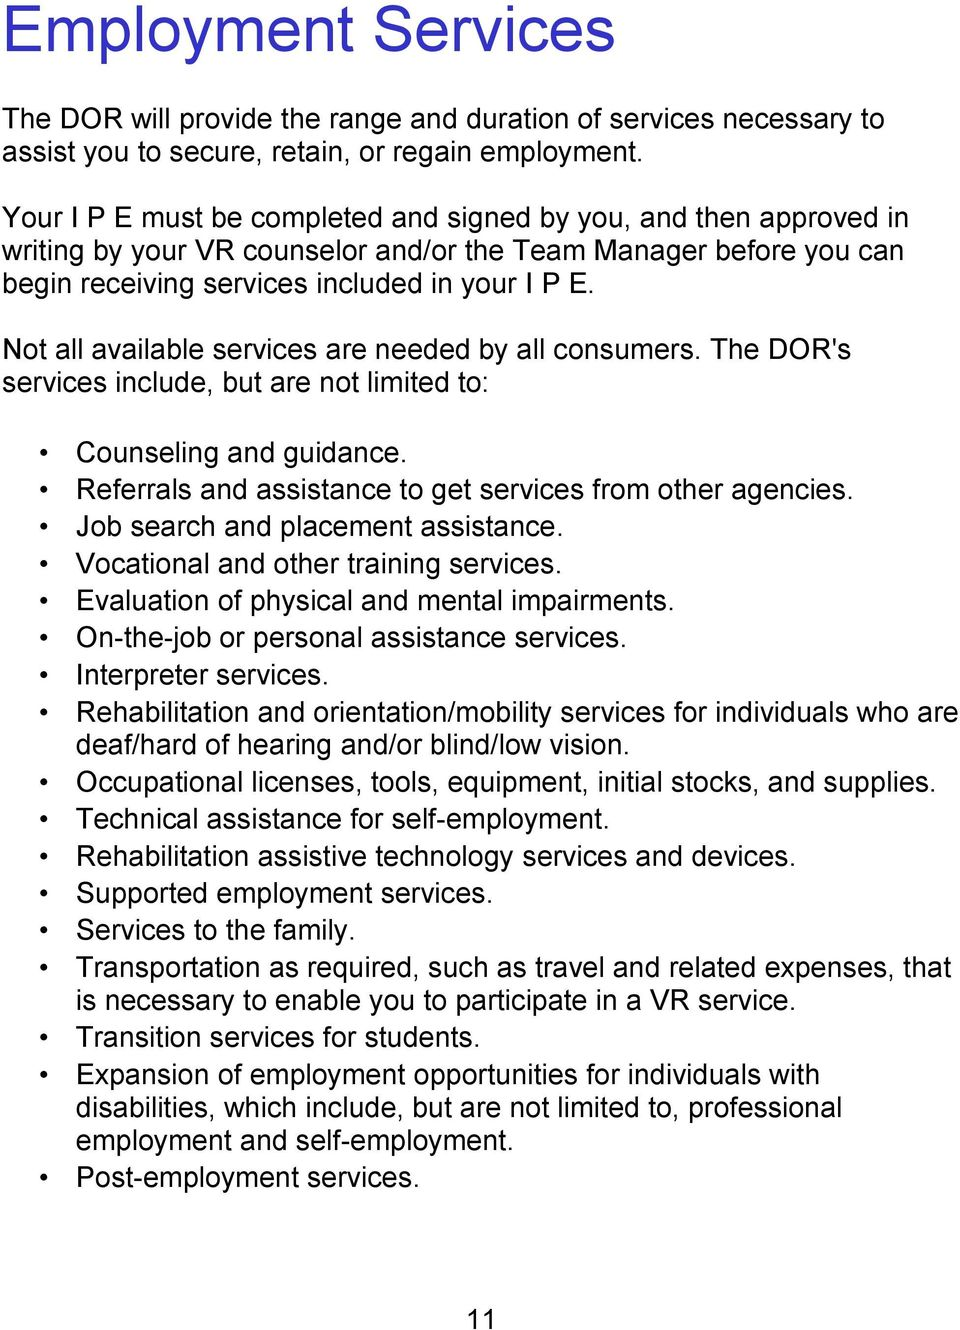 Not all available services are needed by all consumers. The DOR's services include, but are not limited to: Counseling and guidance. Referrals and assistance to get services from other agencies.